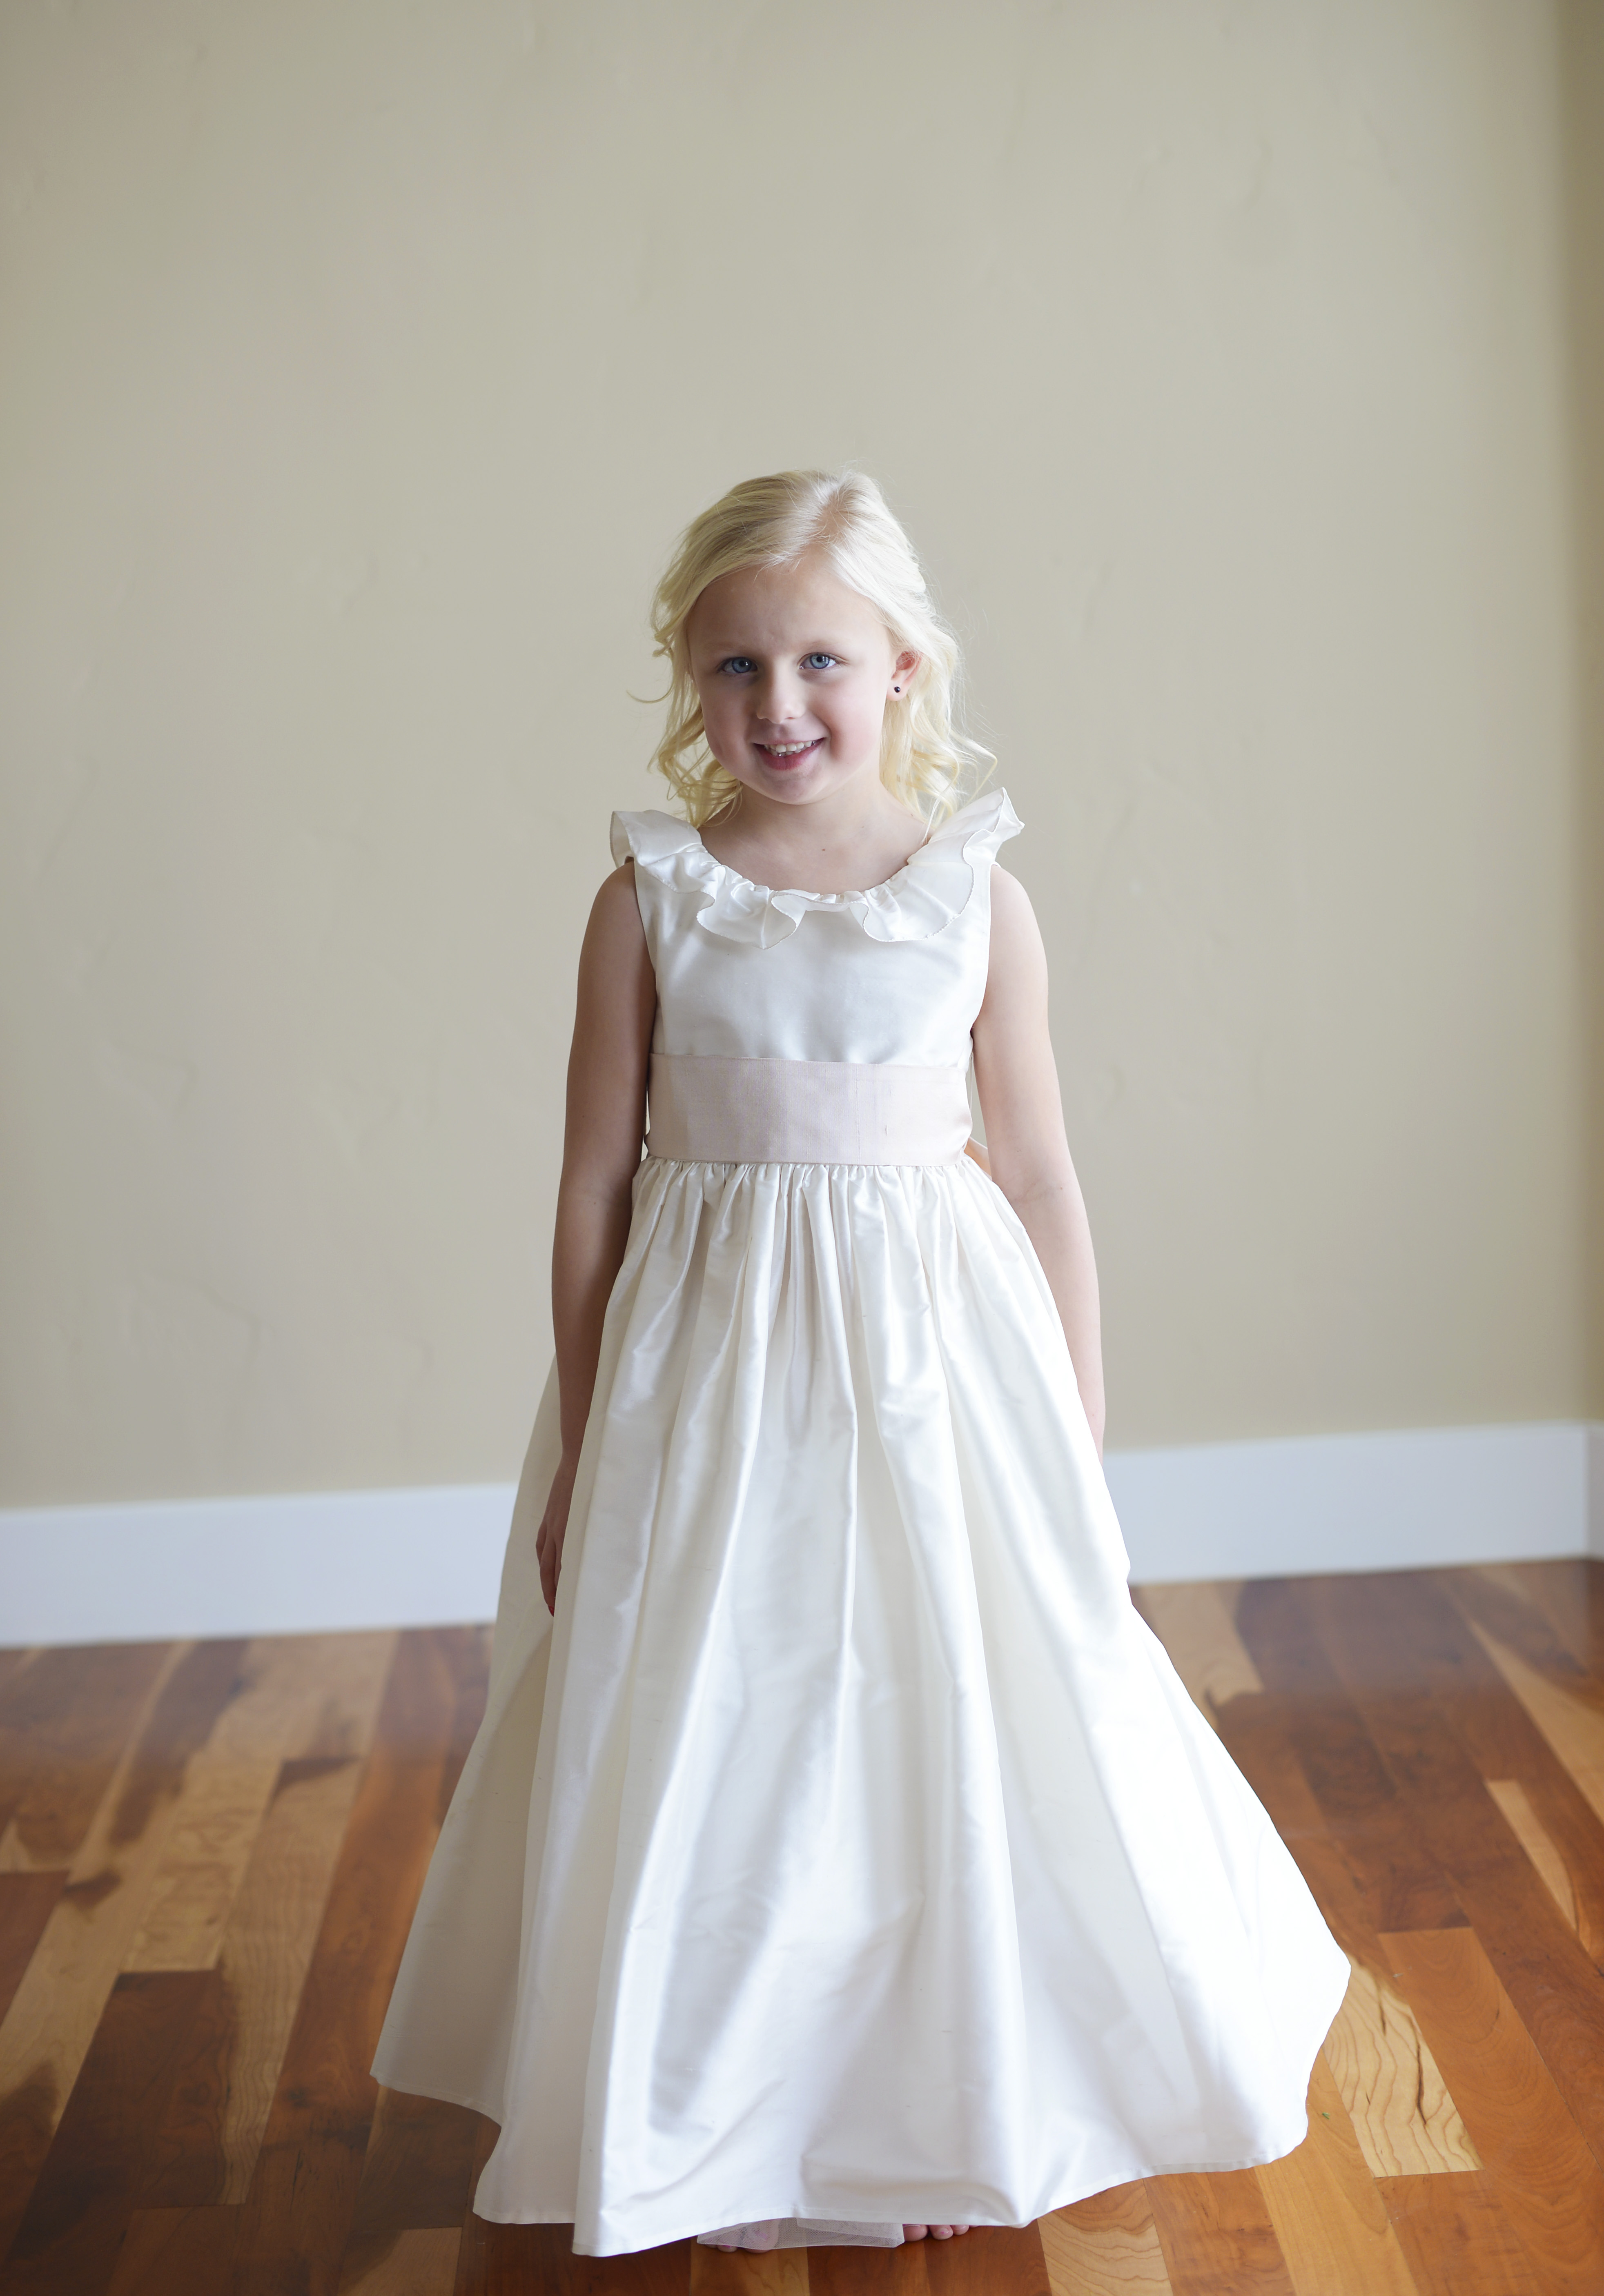 Our Flower Girl Model Growing Up